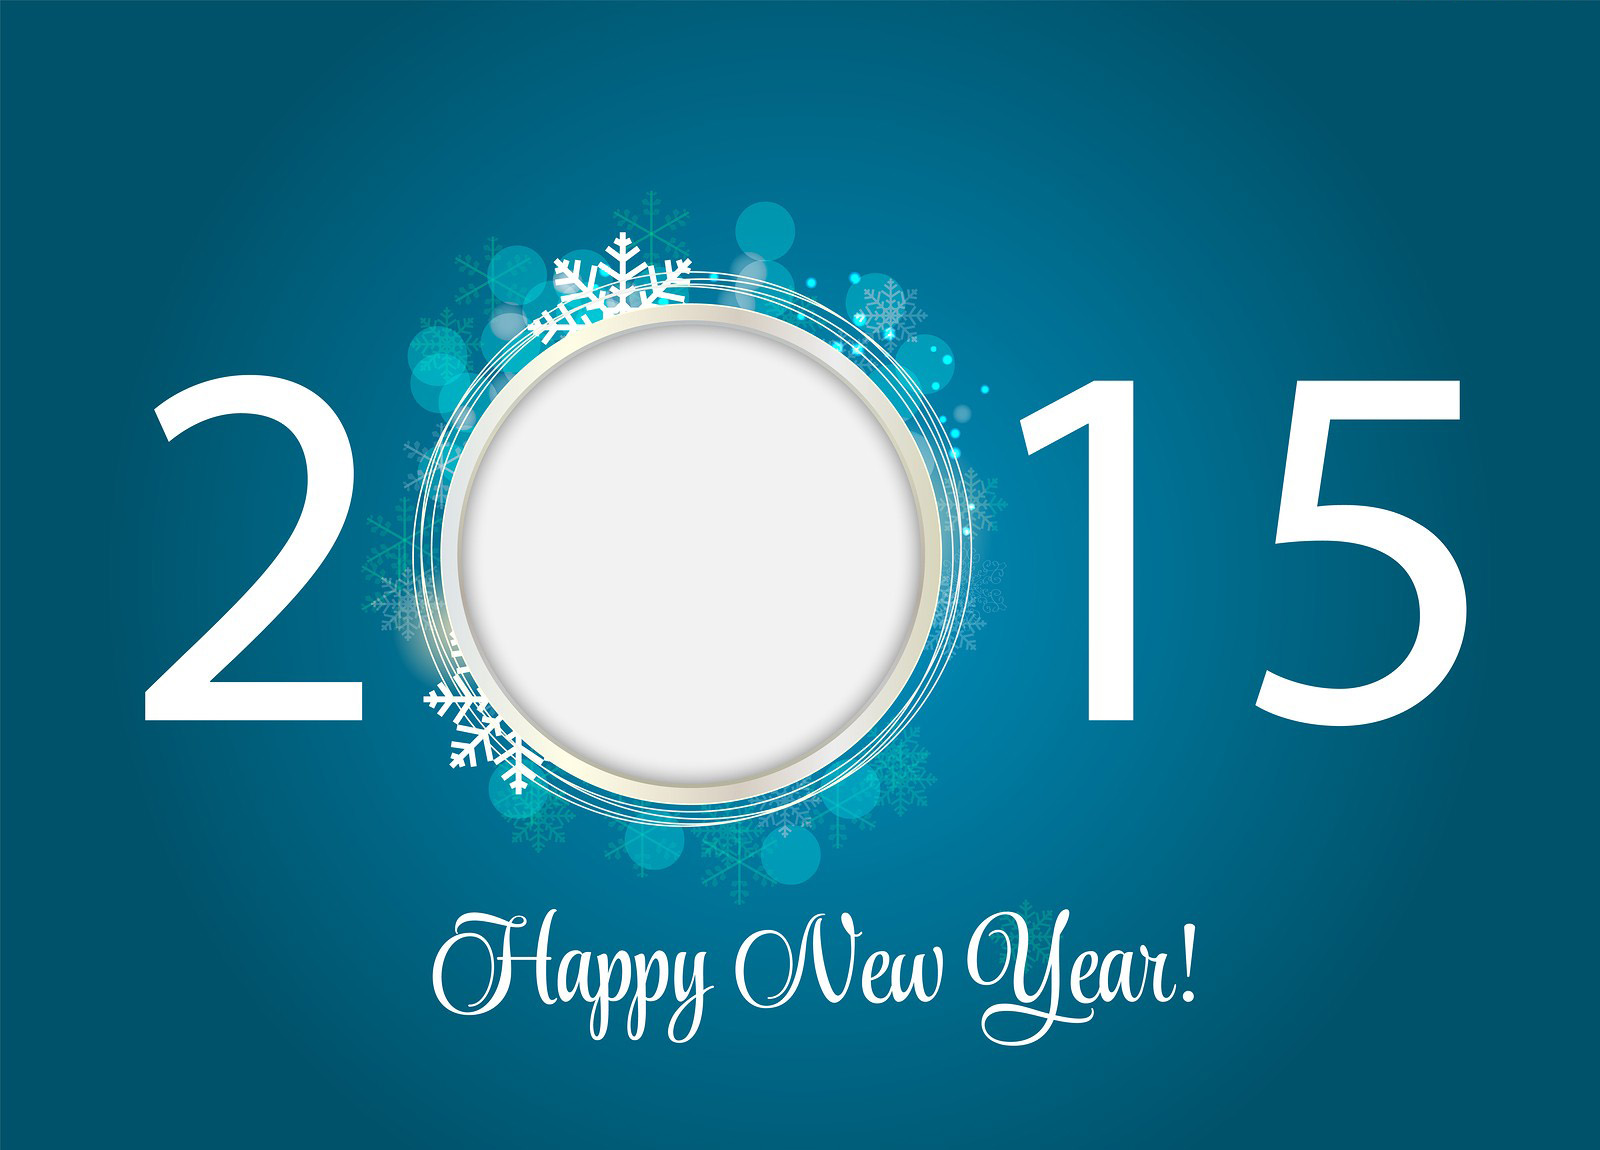 Happy New Year Wallpaper 2015 Snowflake